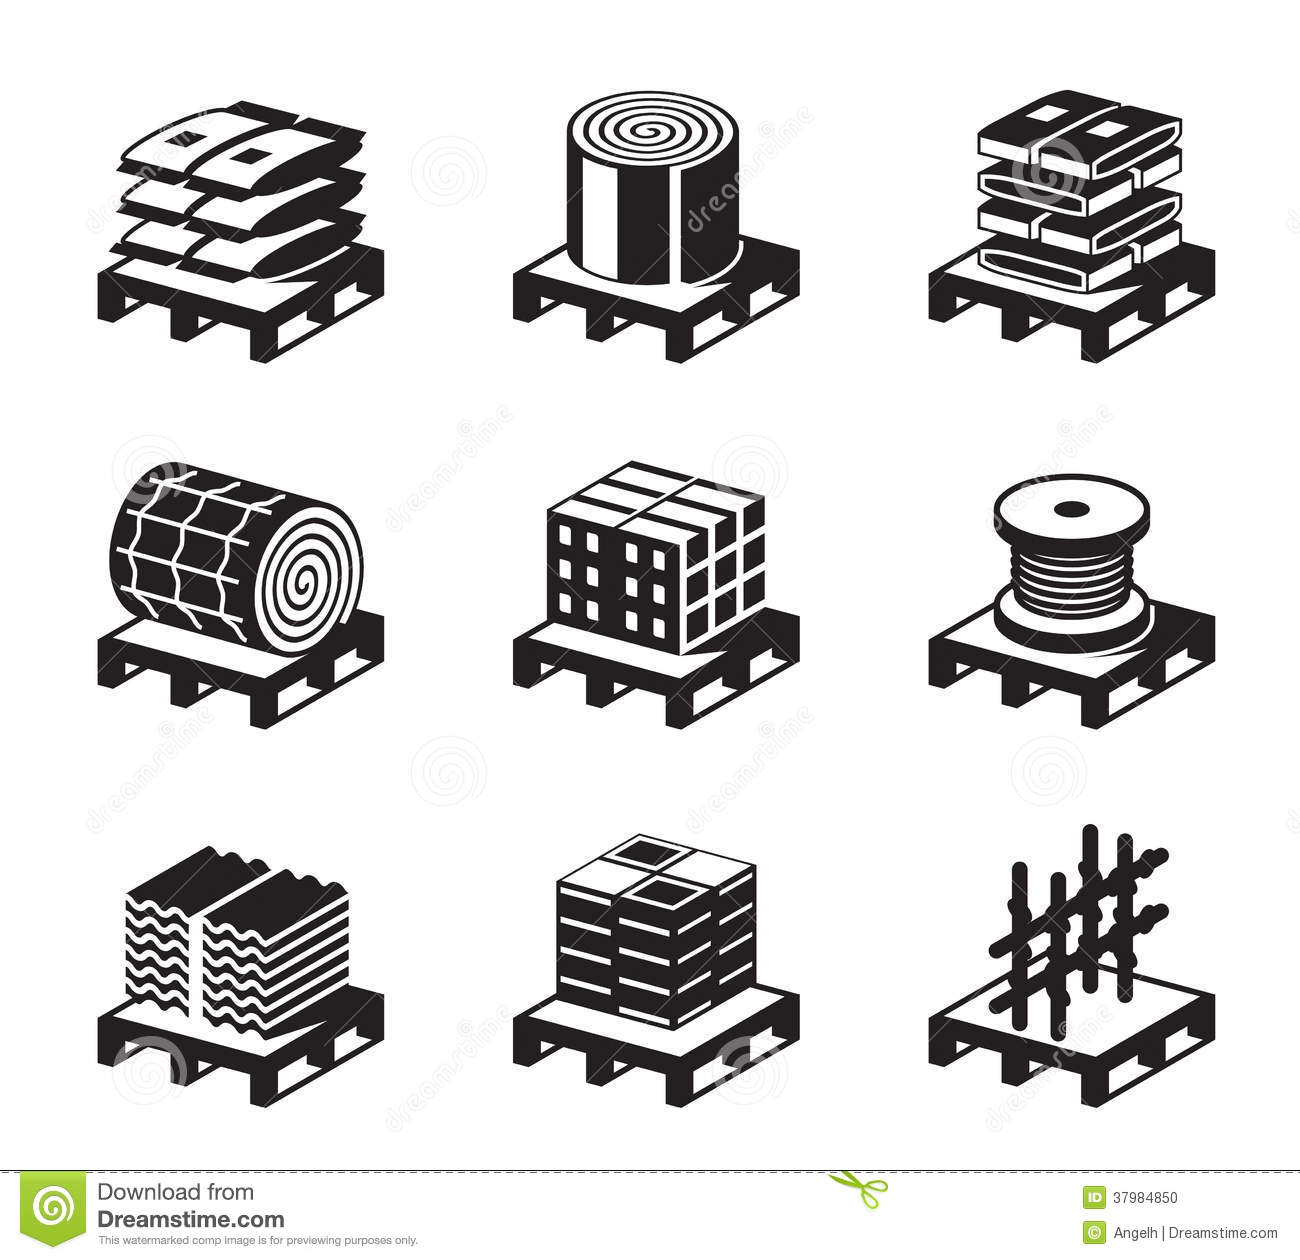 Construction Materials Royalty Free Stock Photo